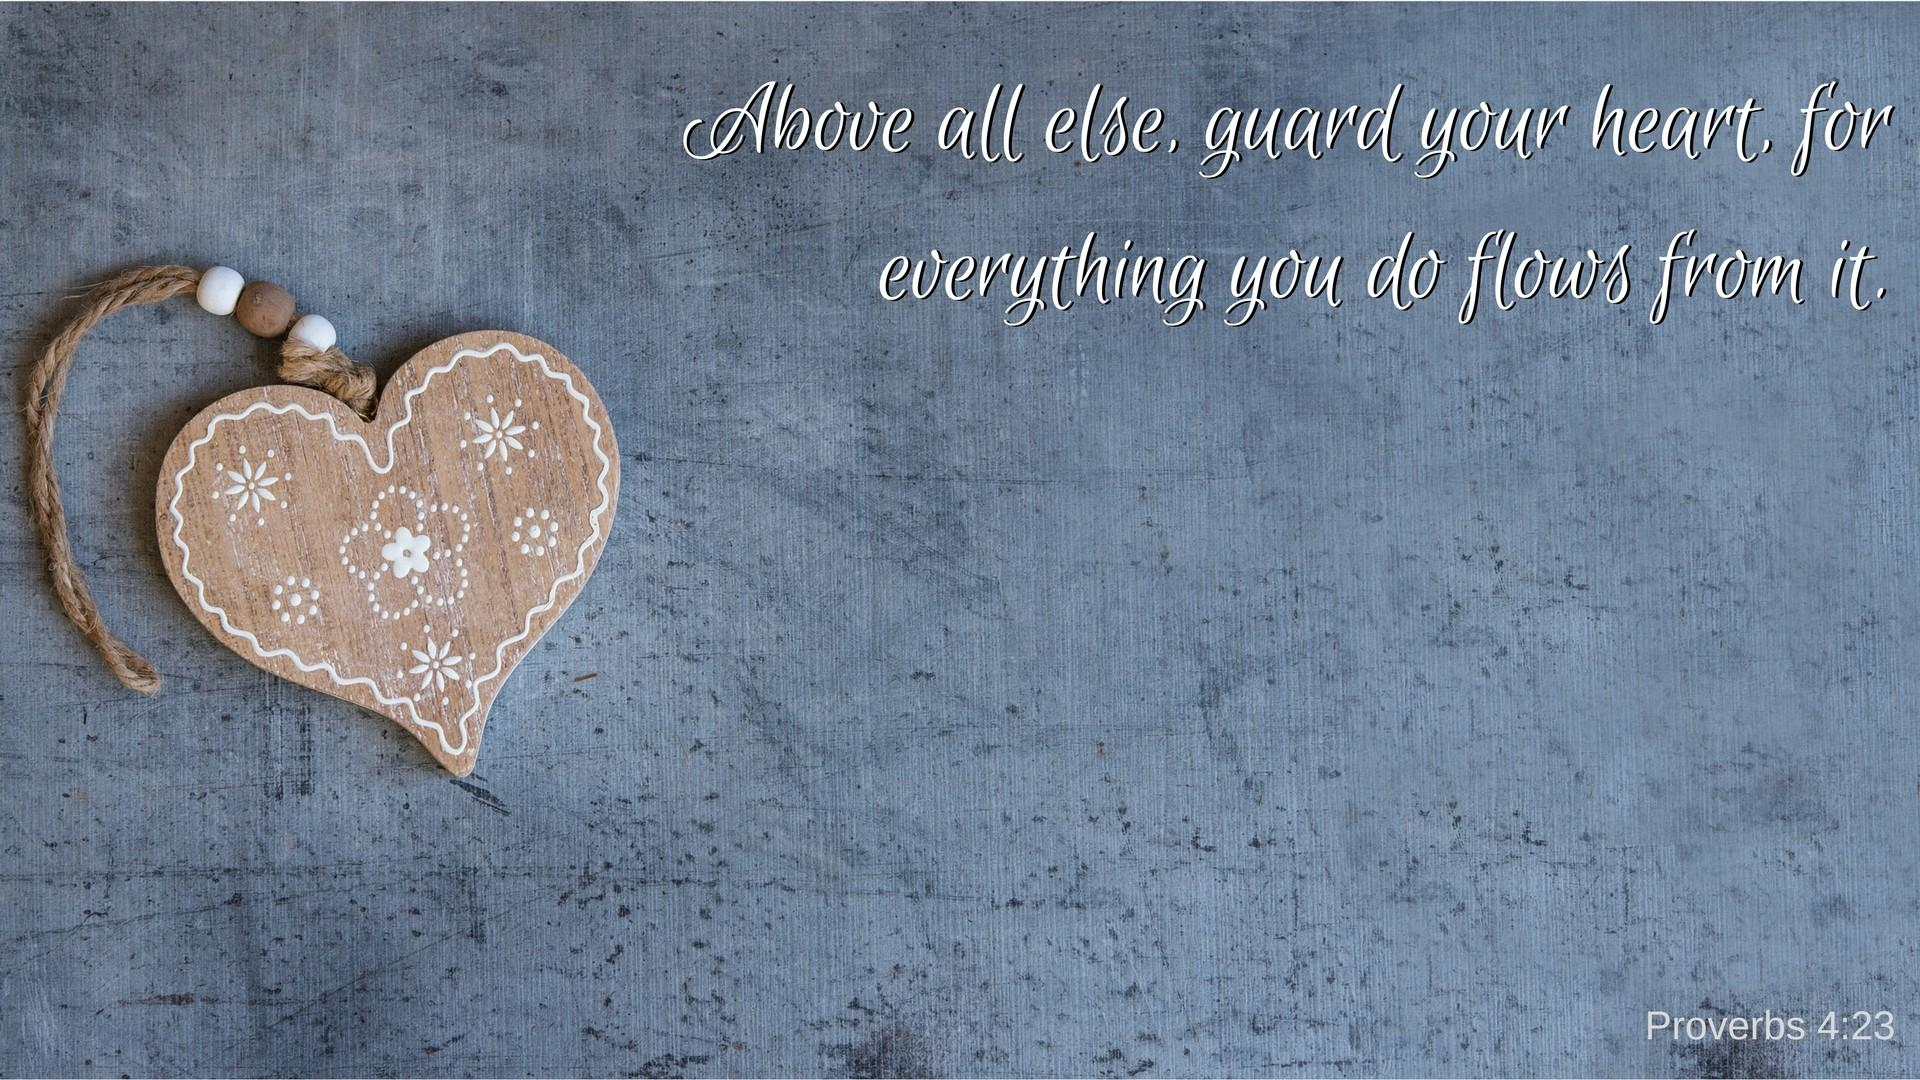 Wallpaper With Bible Verse Posted By Michelle Cunningham